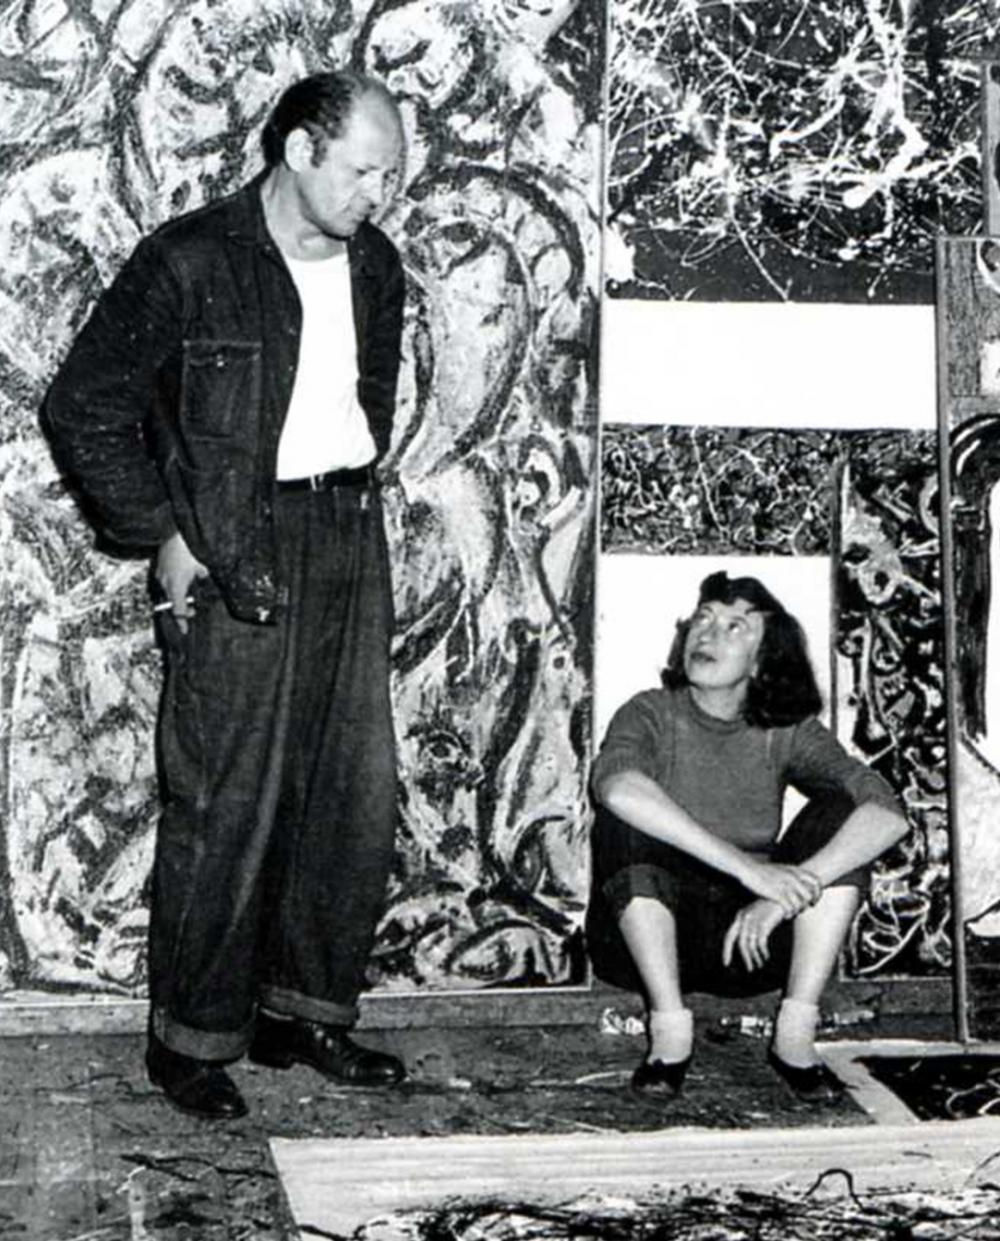 POLLOK-KRASNER HOUSE & STUDIO Visit the studio in Springs were Jackson Pollock and Lee Krasner lived, worked & created master pieces. Open Thursday - Saturday 1-pm.  More info here.